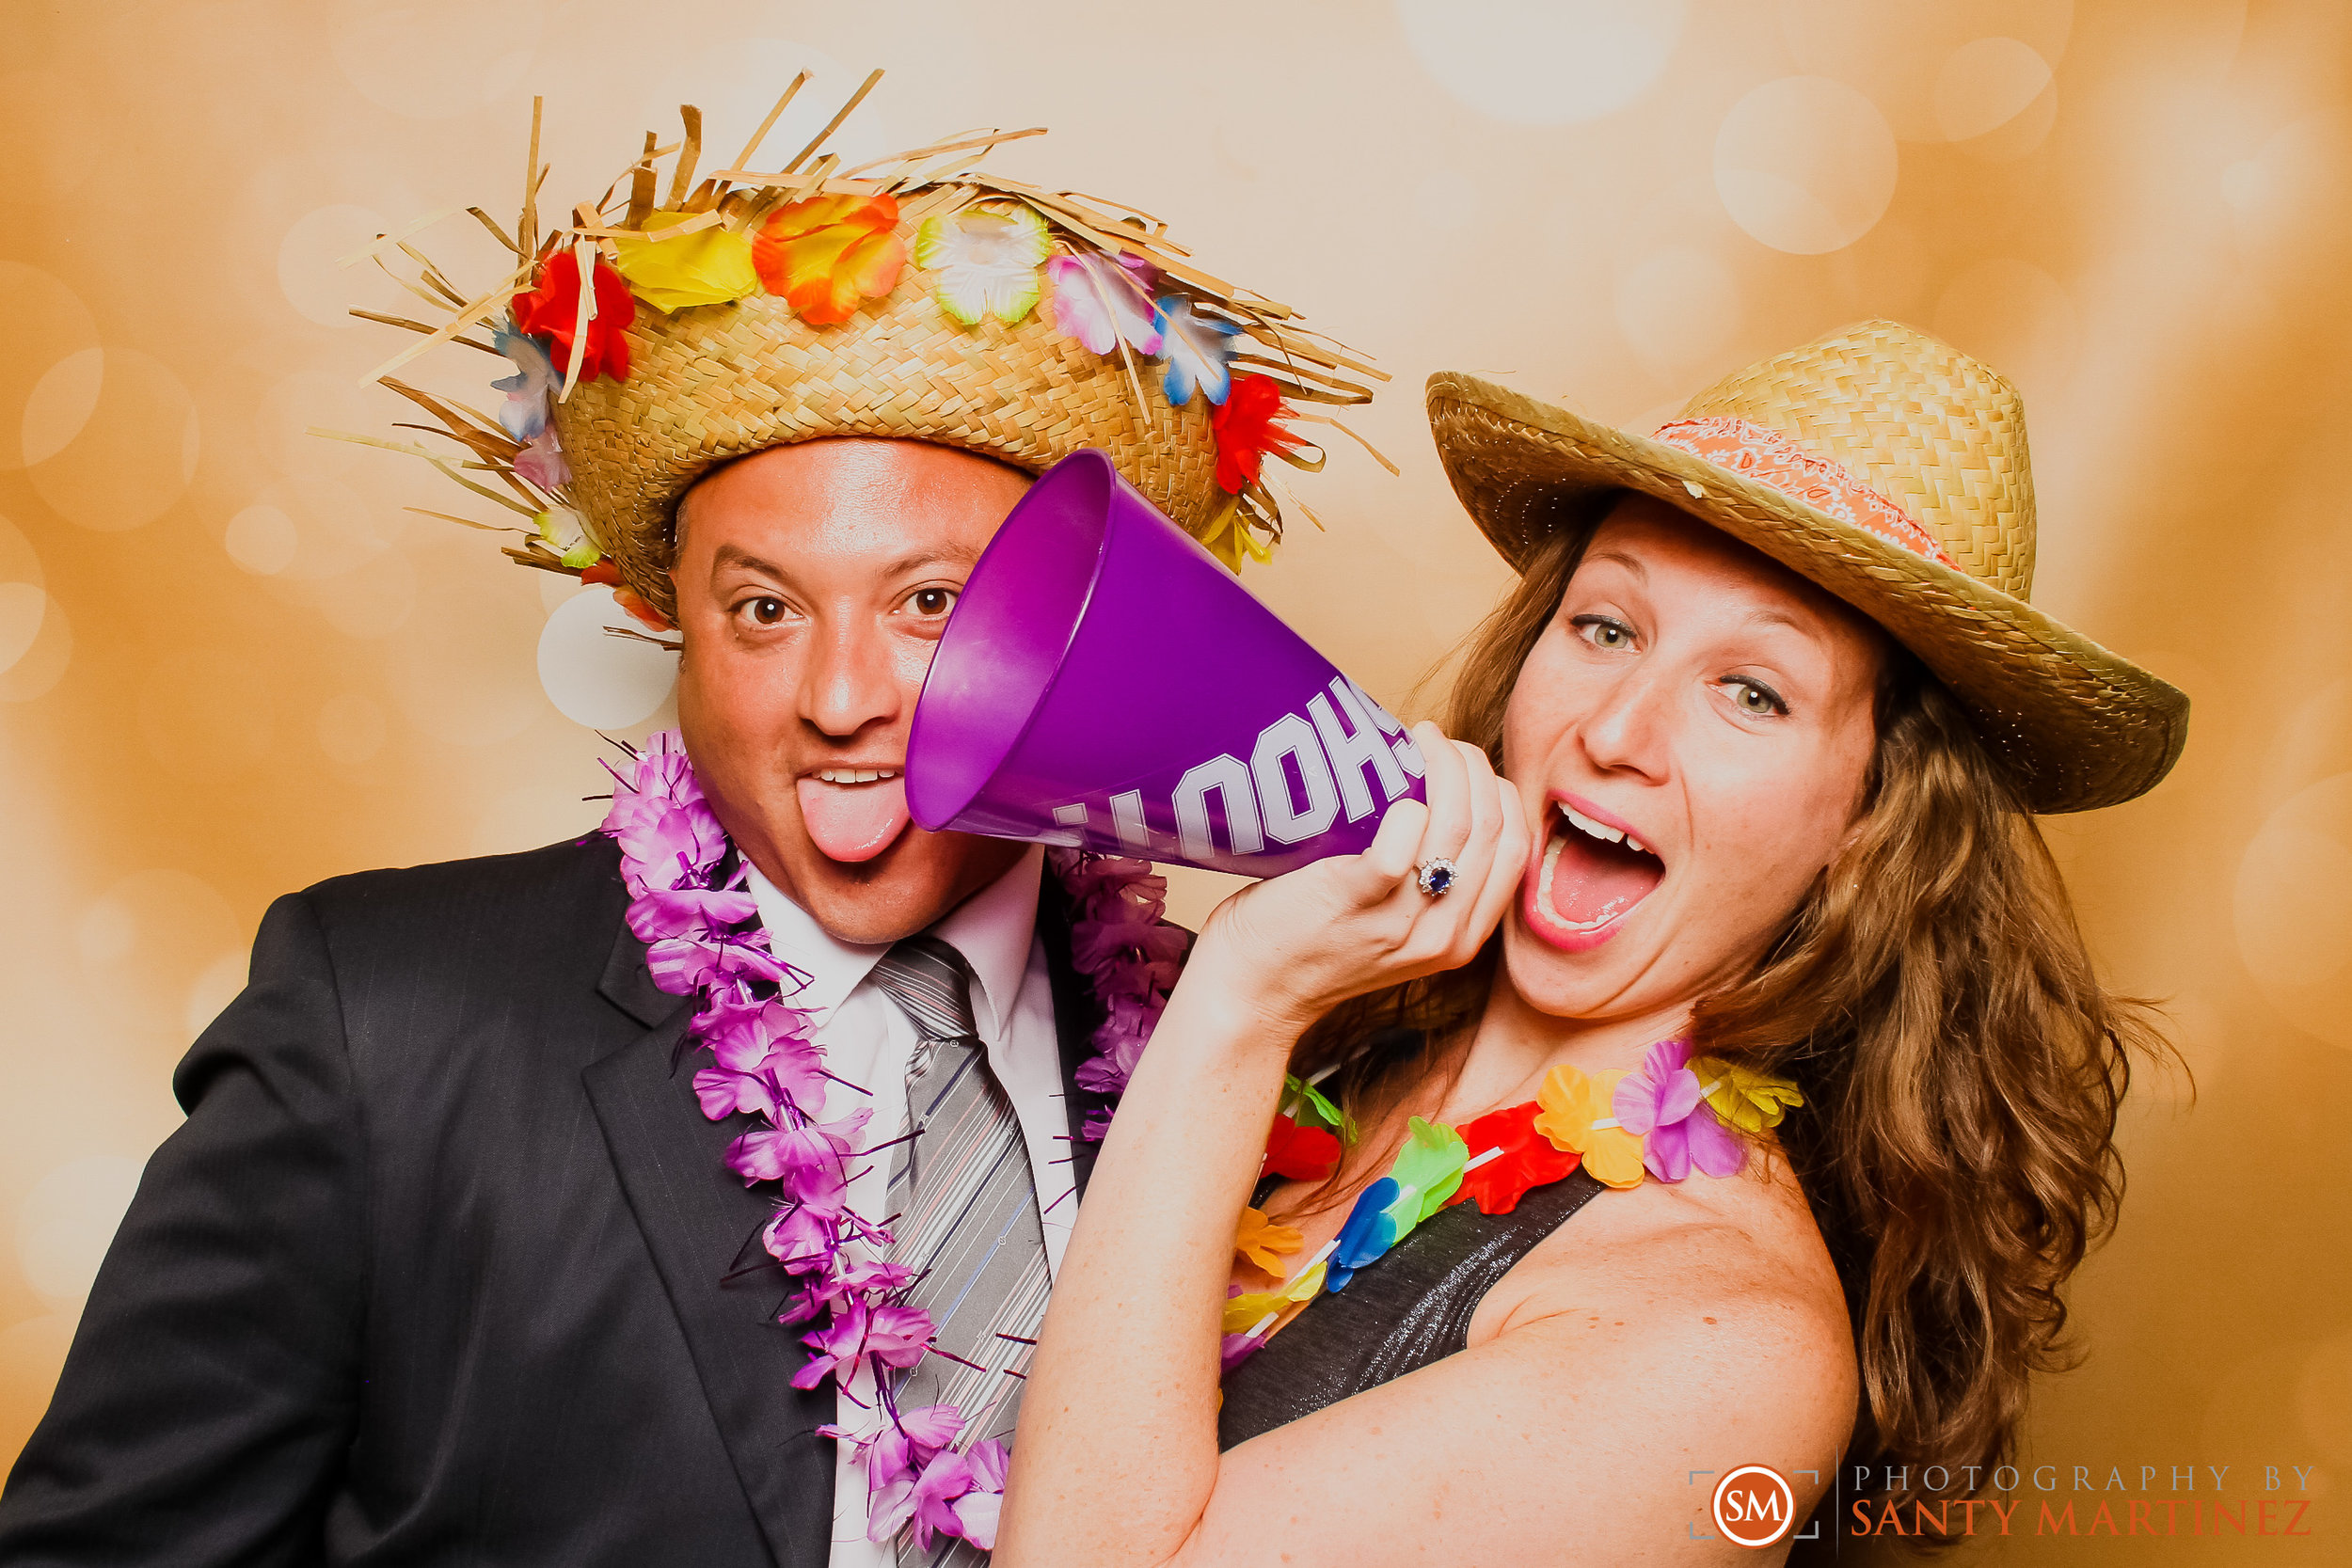 Wedding Ritz Carlton Coconut Grove - Santy Martinez-39.jpg